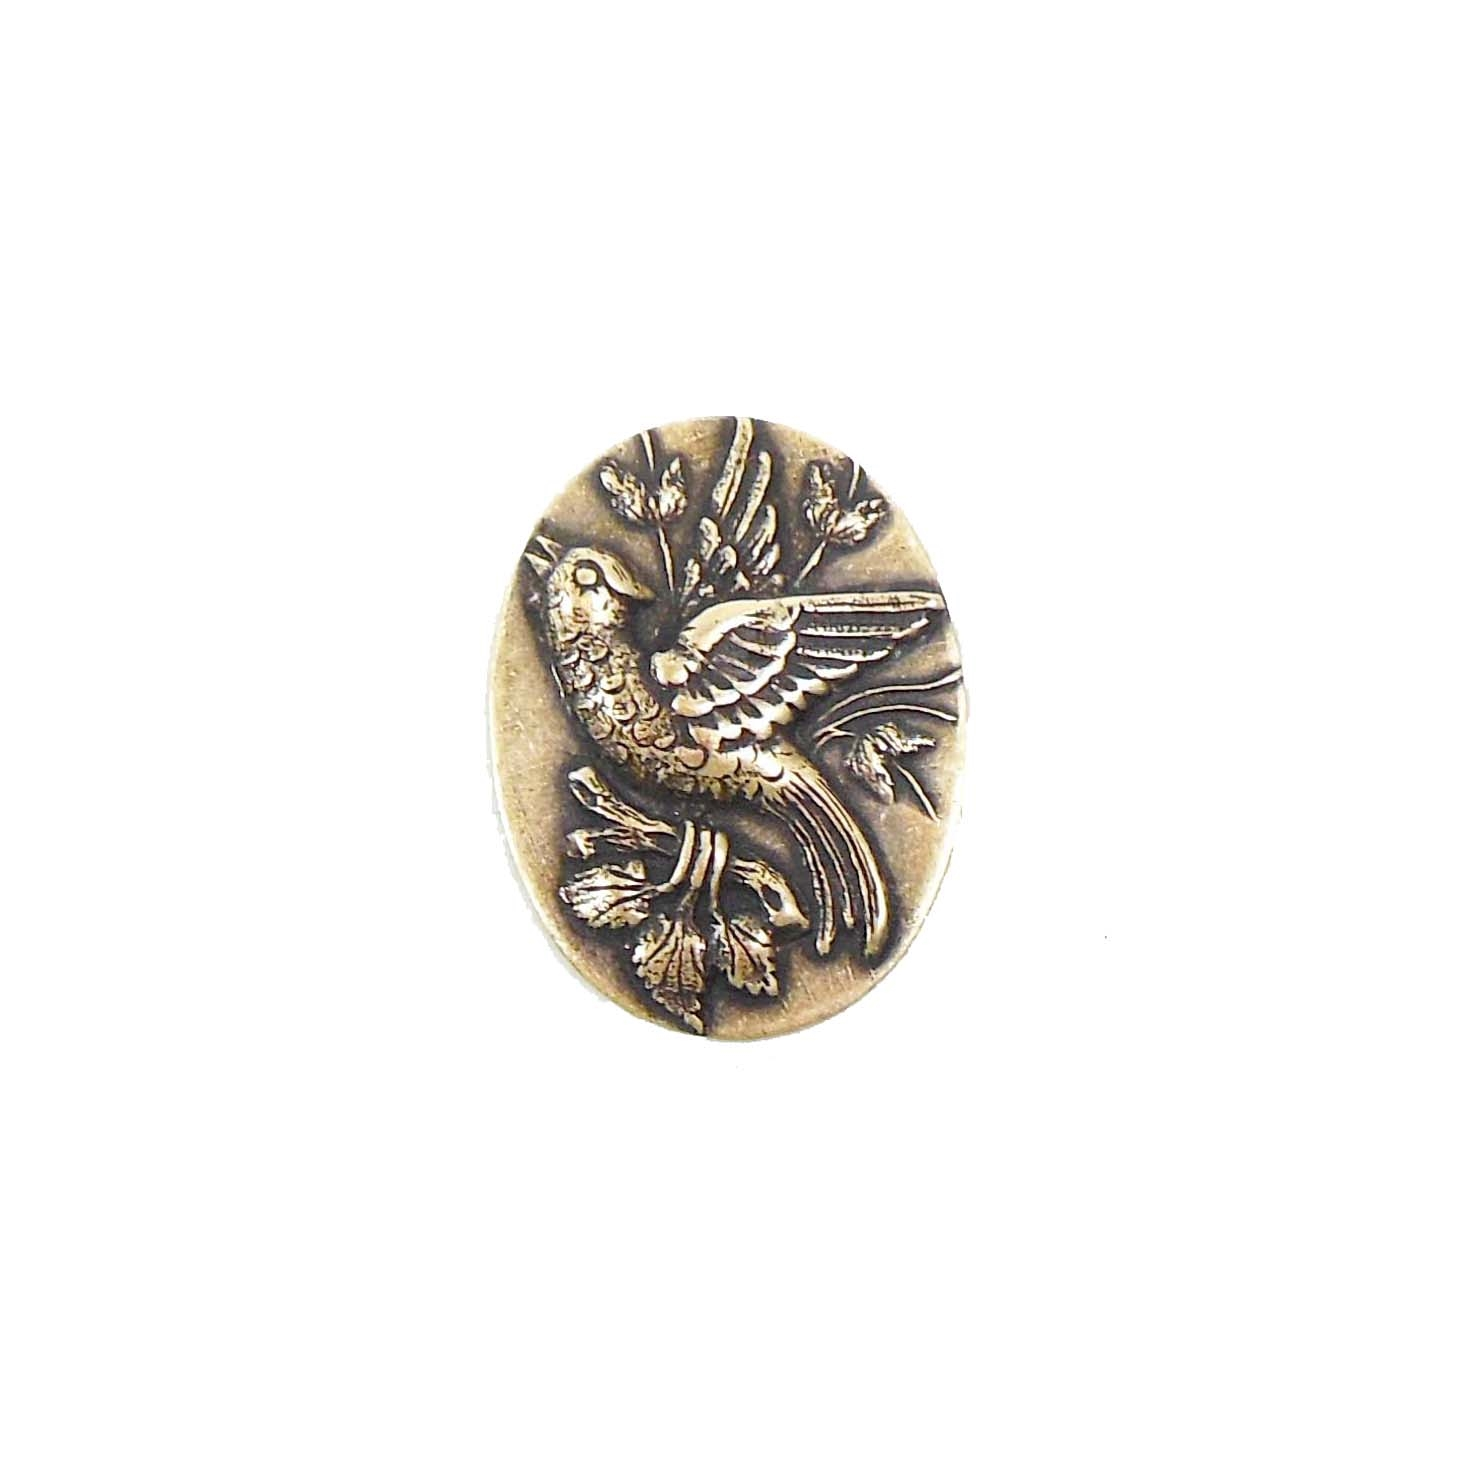 bird of paradise stamping, birds, brass ox, antique brass, brass, bird, paradise, brass stamping, raised bird, floral accents, 22x16mm, bird jewelry, us made, nickel free, B'sue Boutiques, vintage supplies, jewelry supplies, jewelry findings, 03631